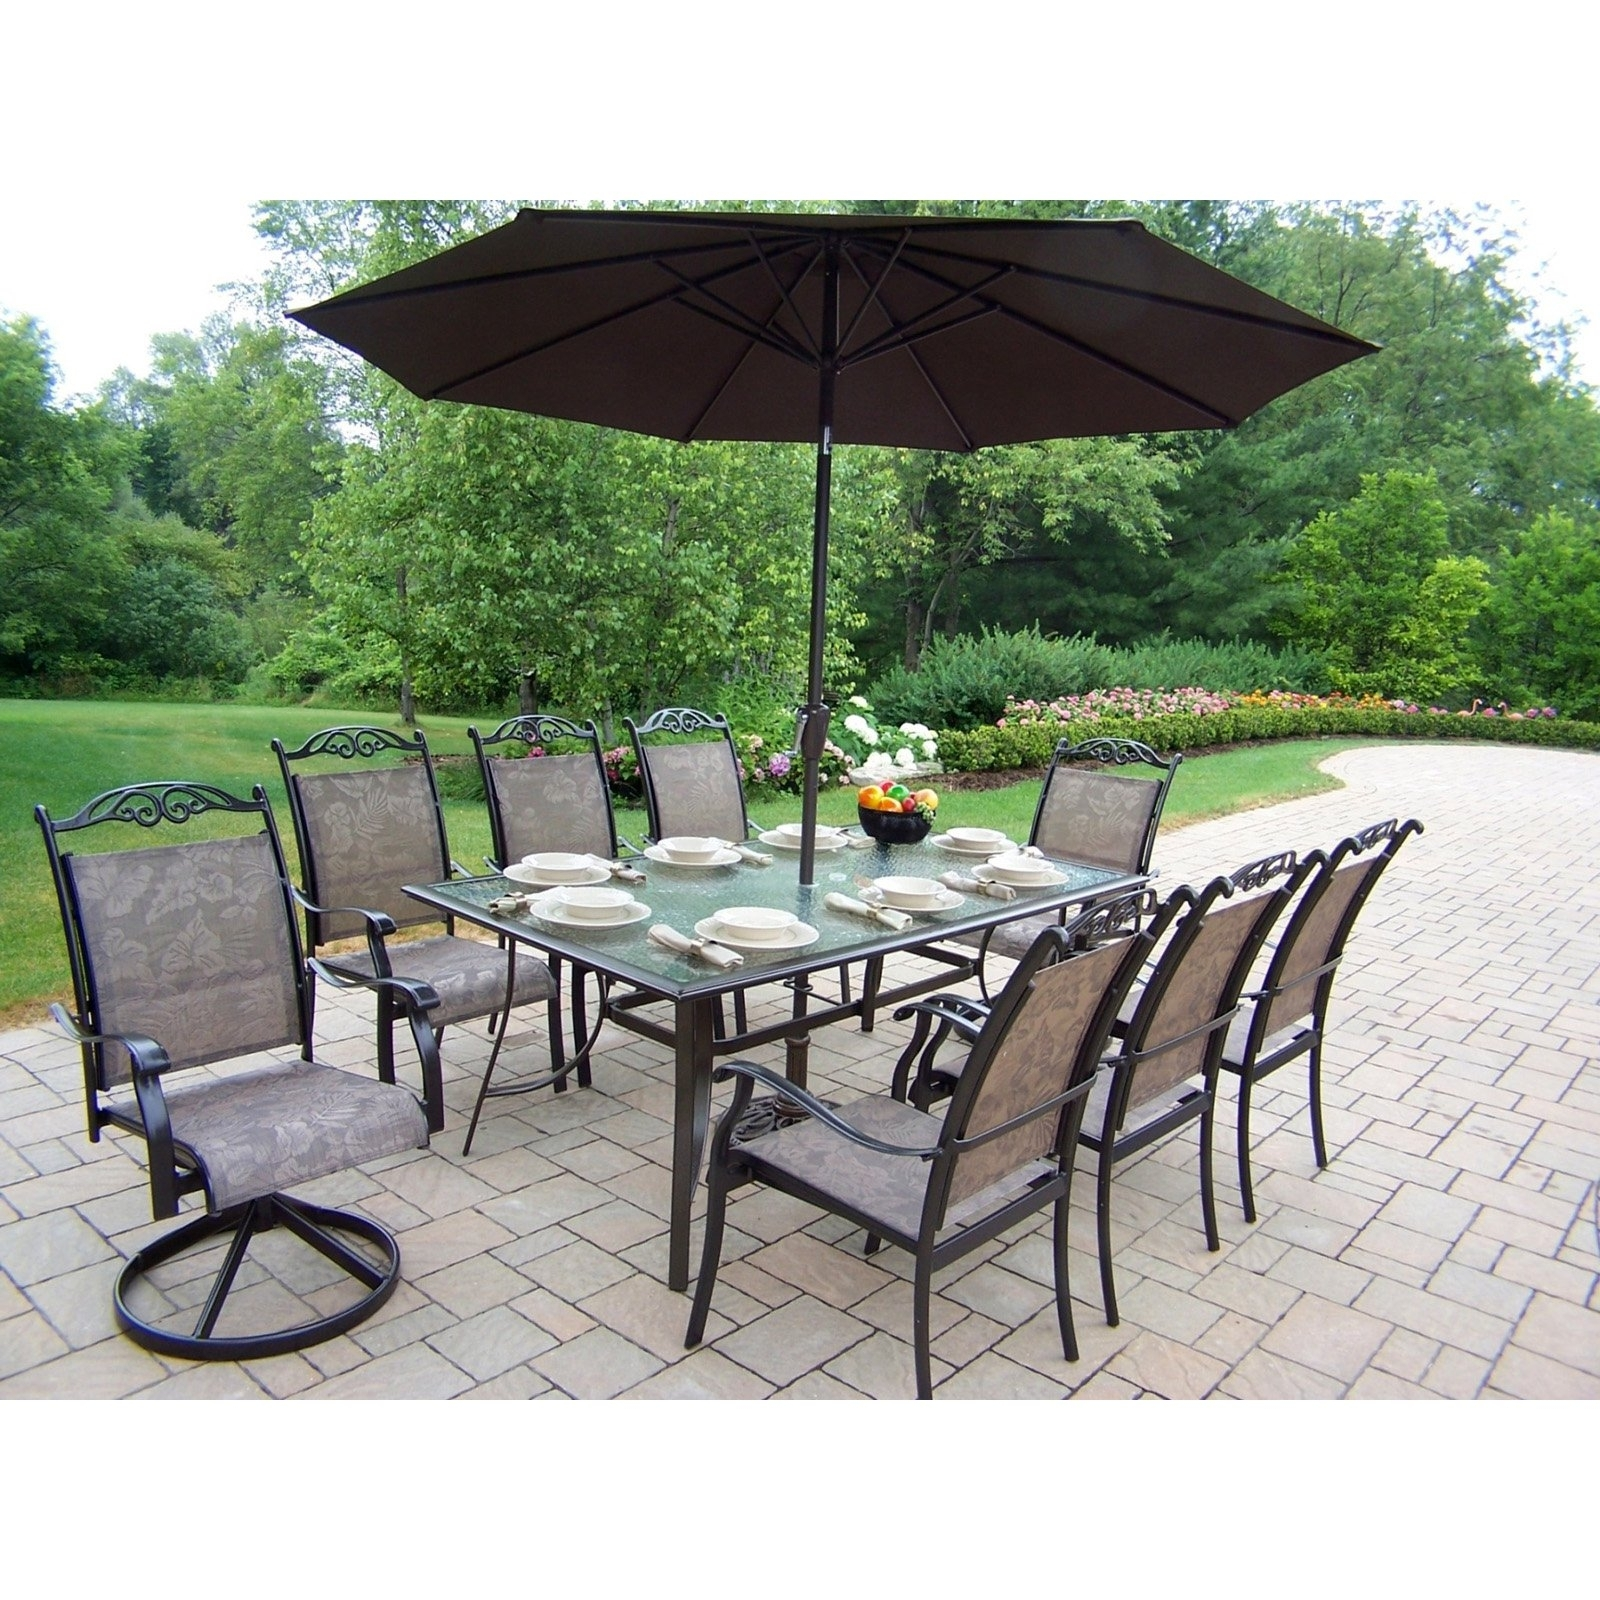 Newest Oakland Living Cascade Patio Dining Set With Umbrella And Stand In Patio Dining Sets With Umbrellas (Gallery 4 of 20)